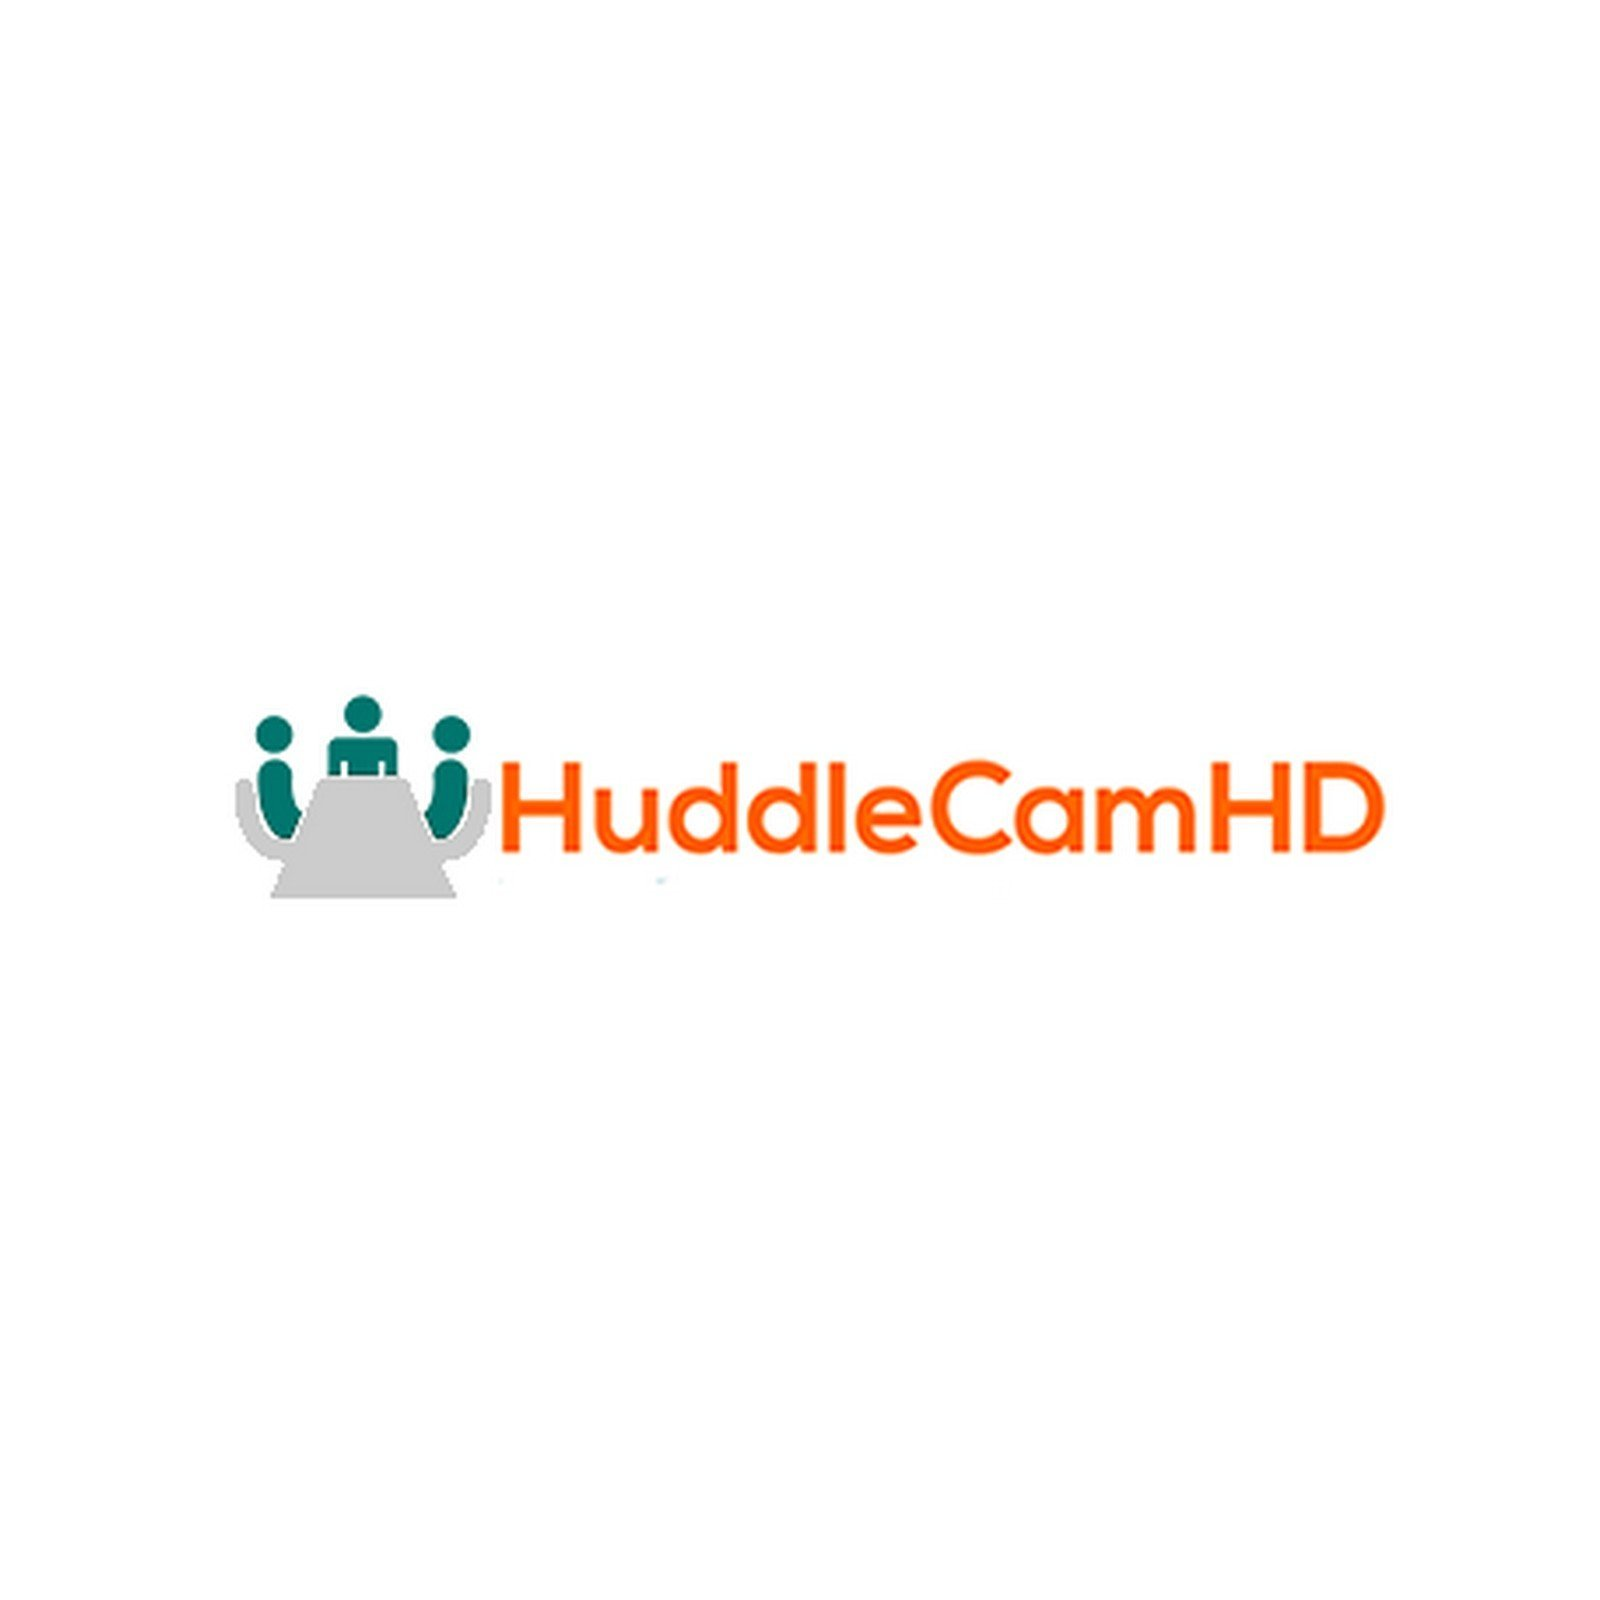 HuddleCamHD HCM-2-WH | Large Universal Wall Mount for PTZ 3X 10X Vaddio Sony Air Cameras White